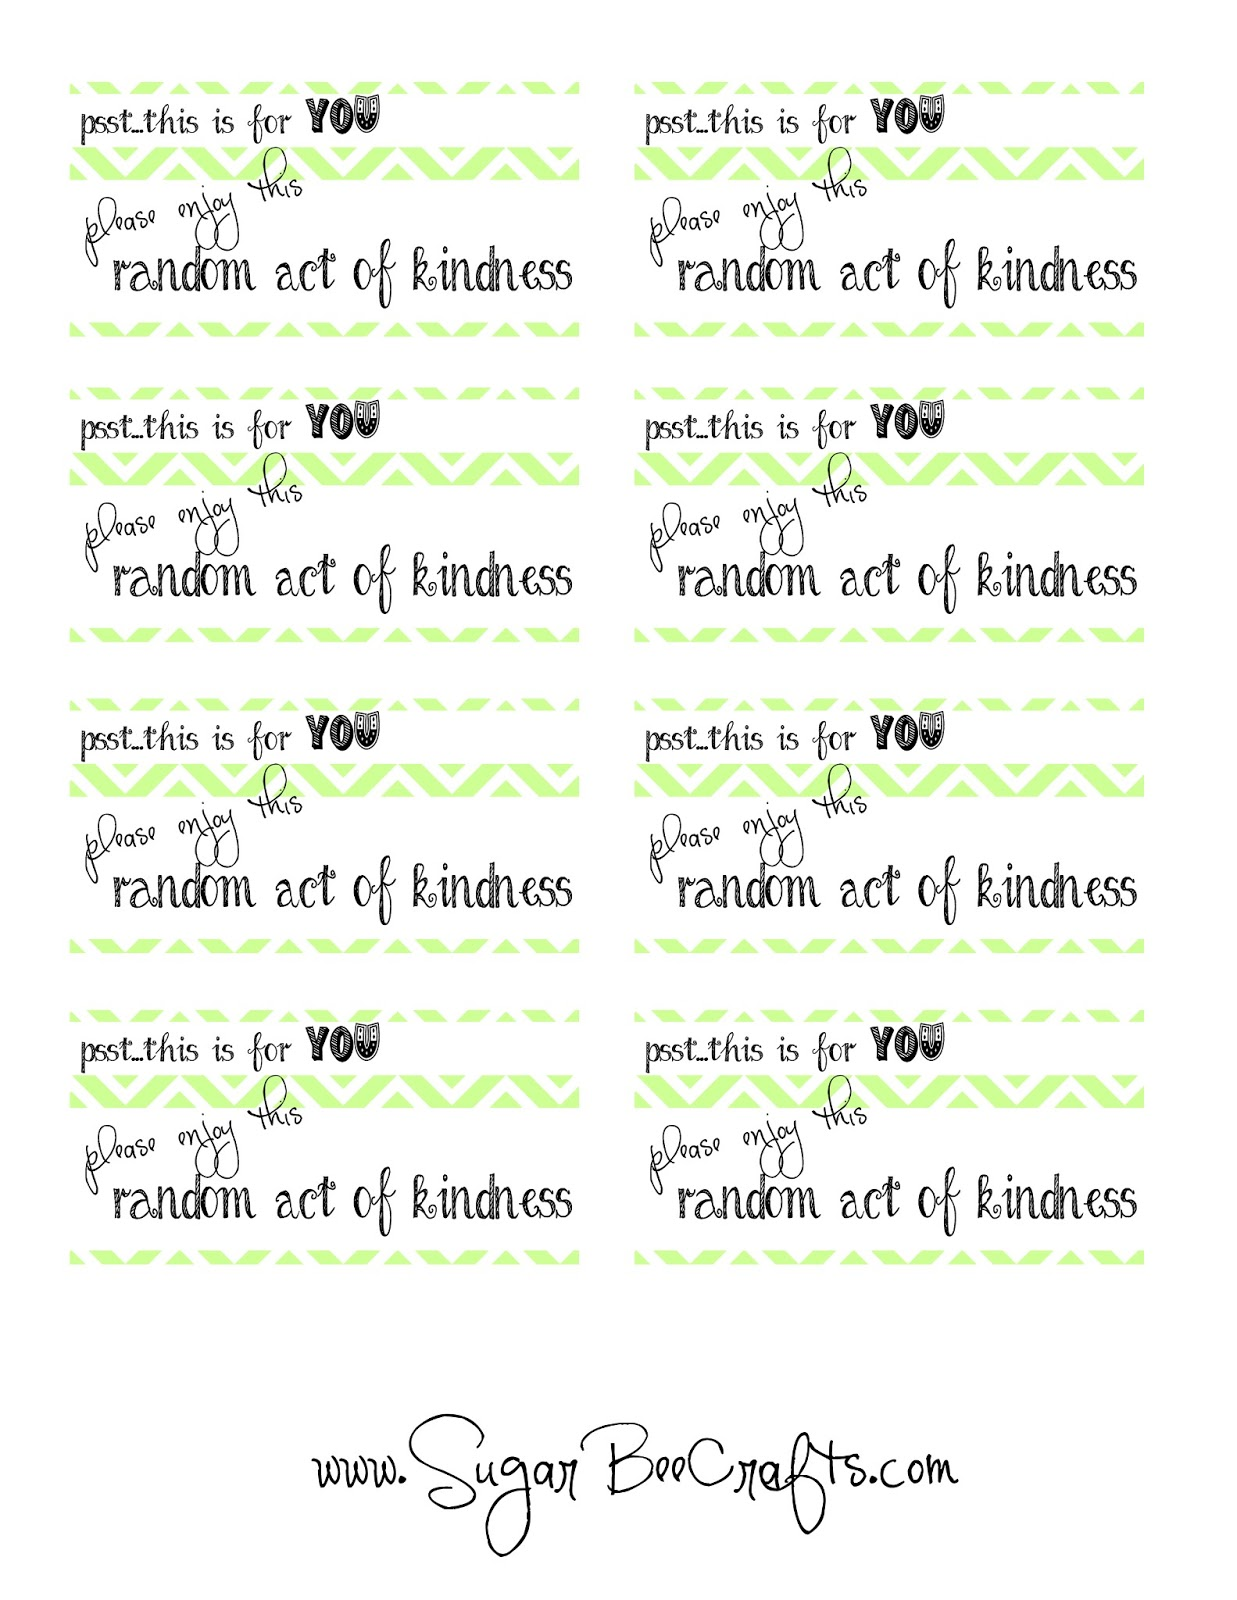 graphic relating to Random Act of Kindness Printable identify ROAKDIY Recap - Random Functions of Kindness - Sugar Bee Crafts